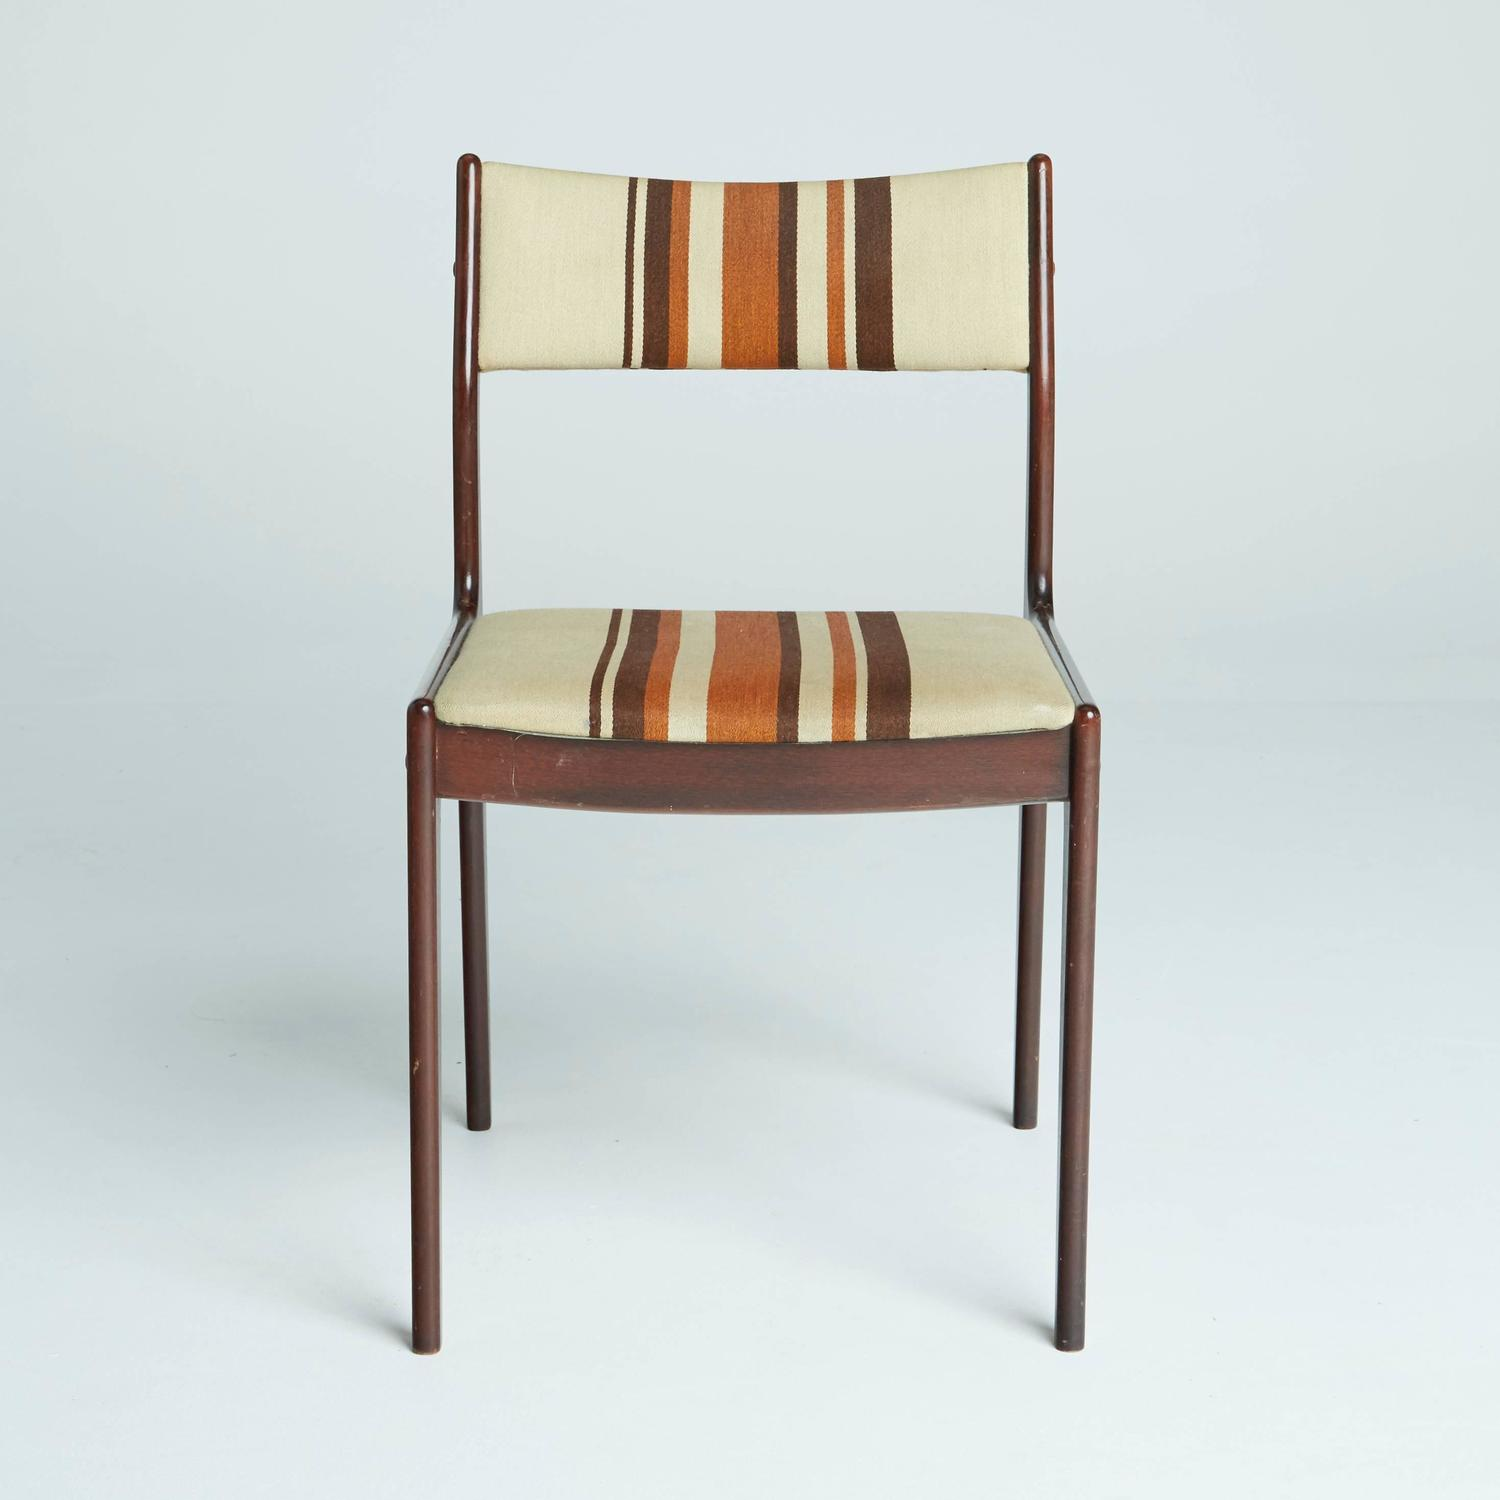 Danish modern dining chairs circa 1960s for sale at 1stdibs for Modern dining room chairs for sale